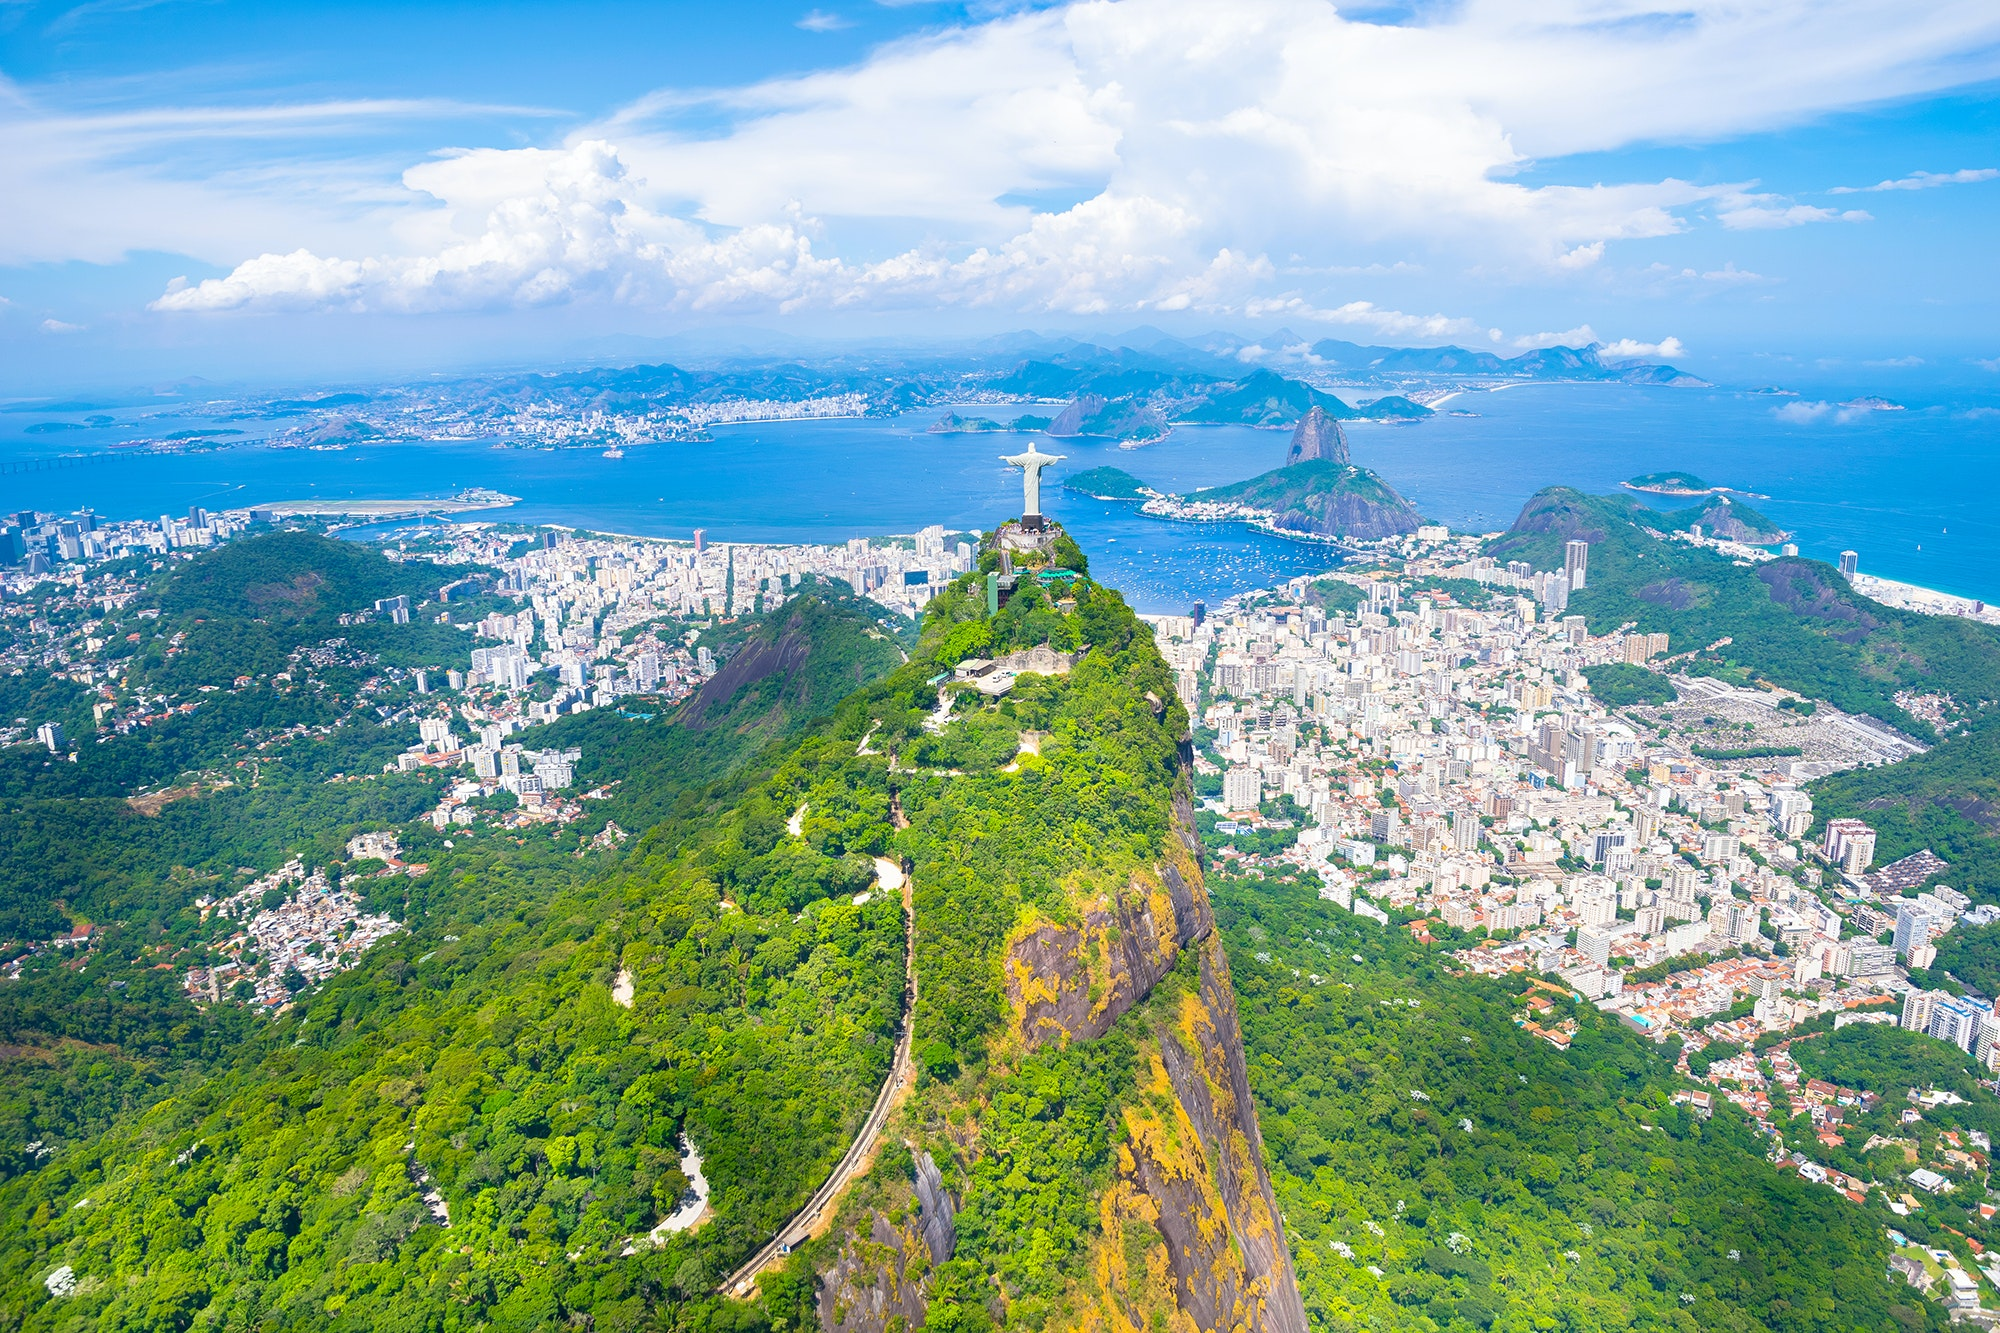 Brazil Eliminates Visa Requirements for U.S. Travelers